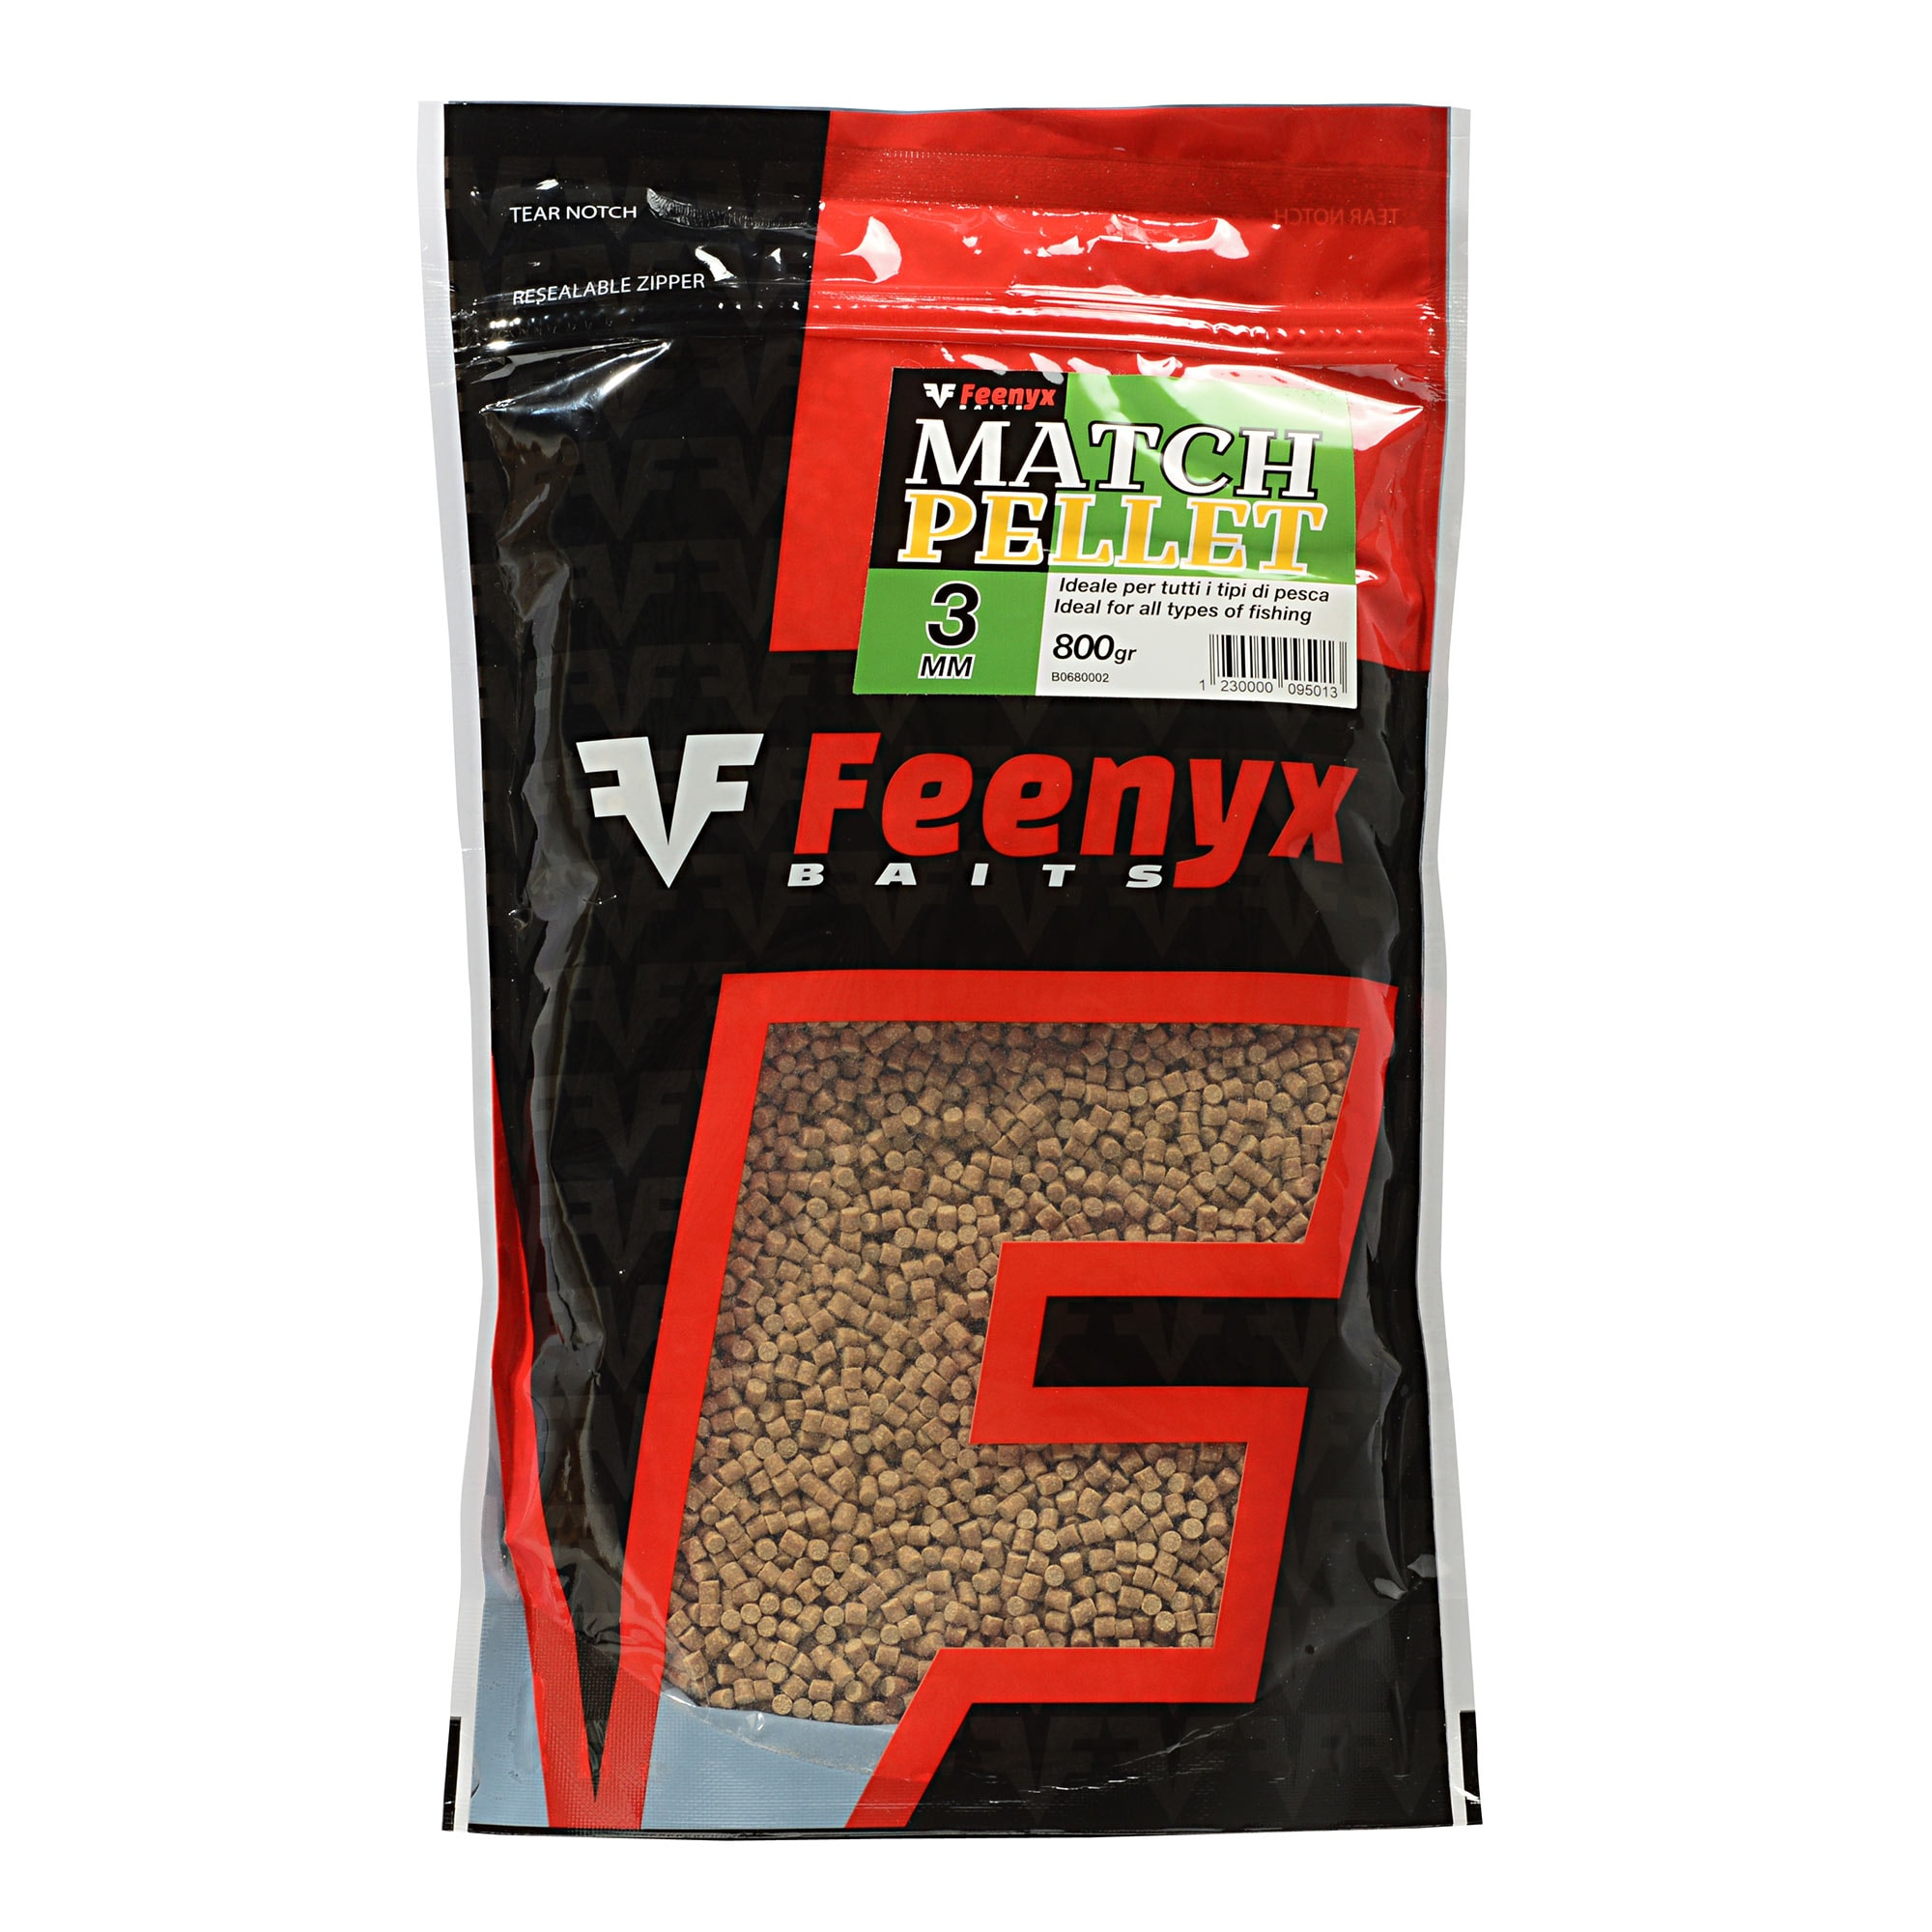 Match Pellet 3mm FEENYX BAIT (800gr.)